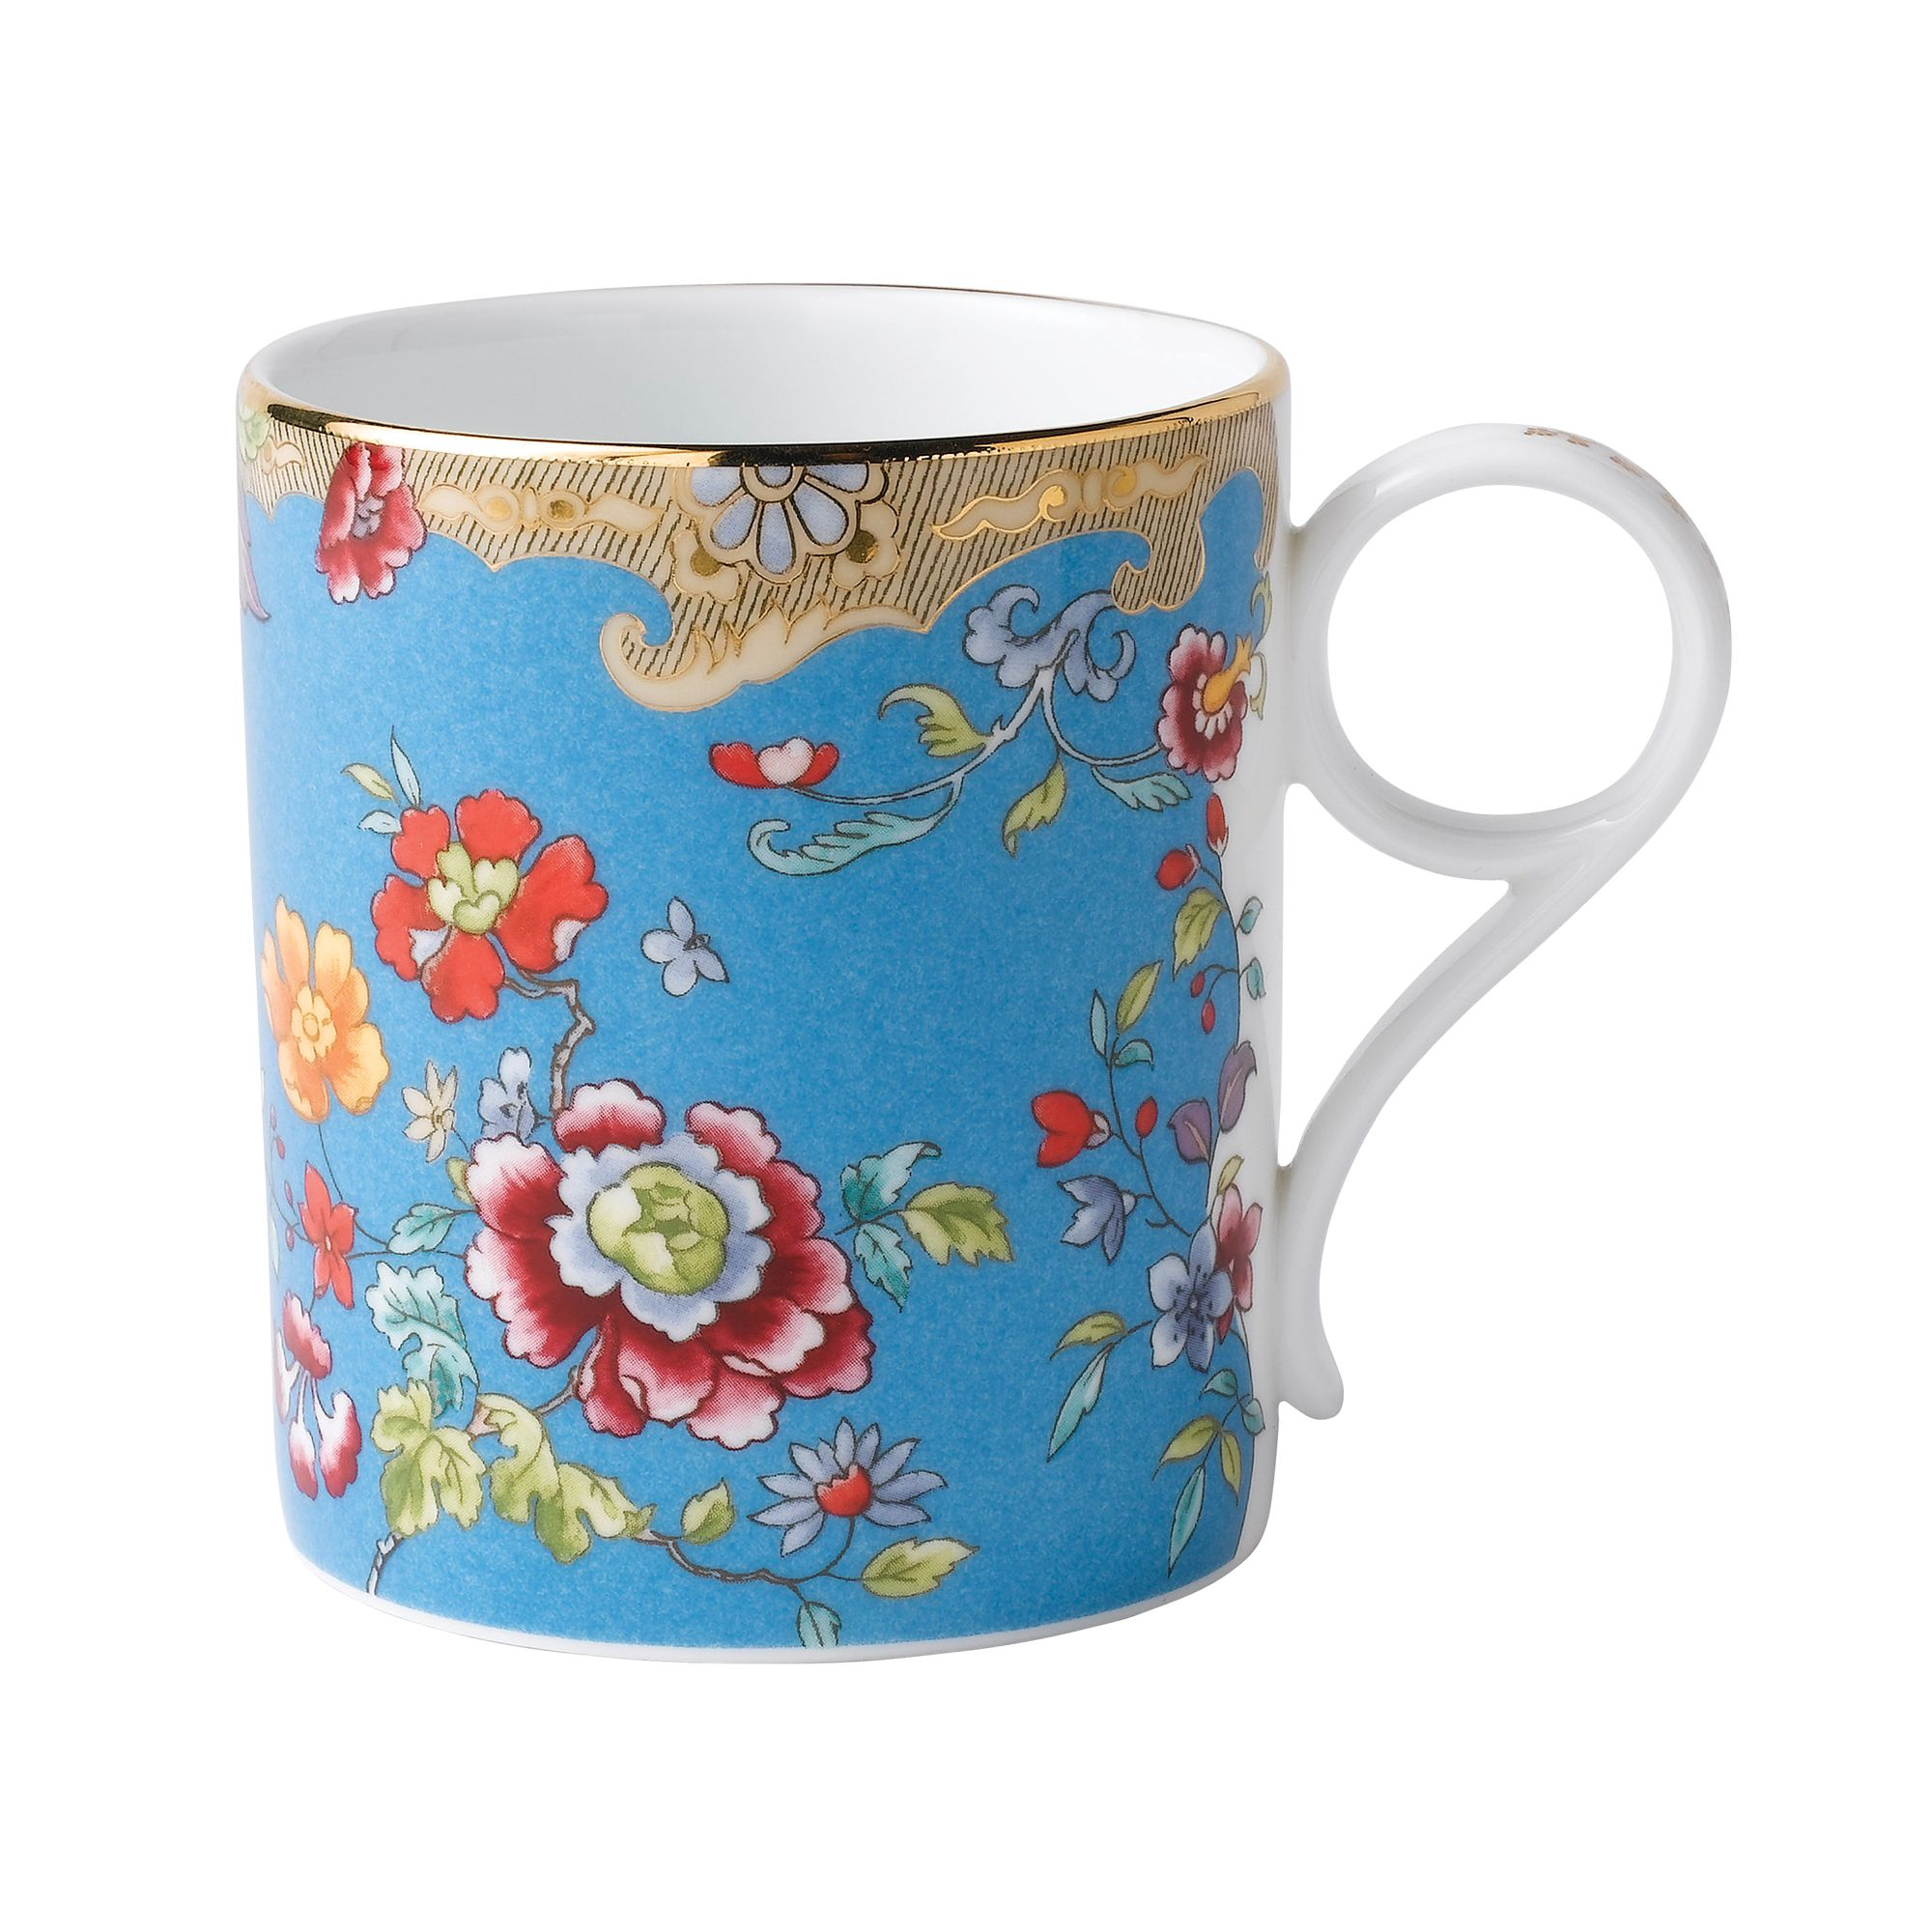 Archive Collection Turquoise Floral Mug